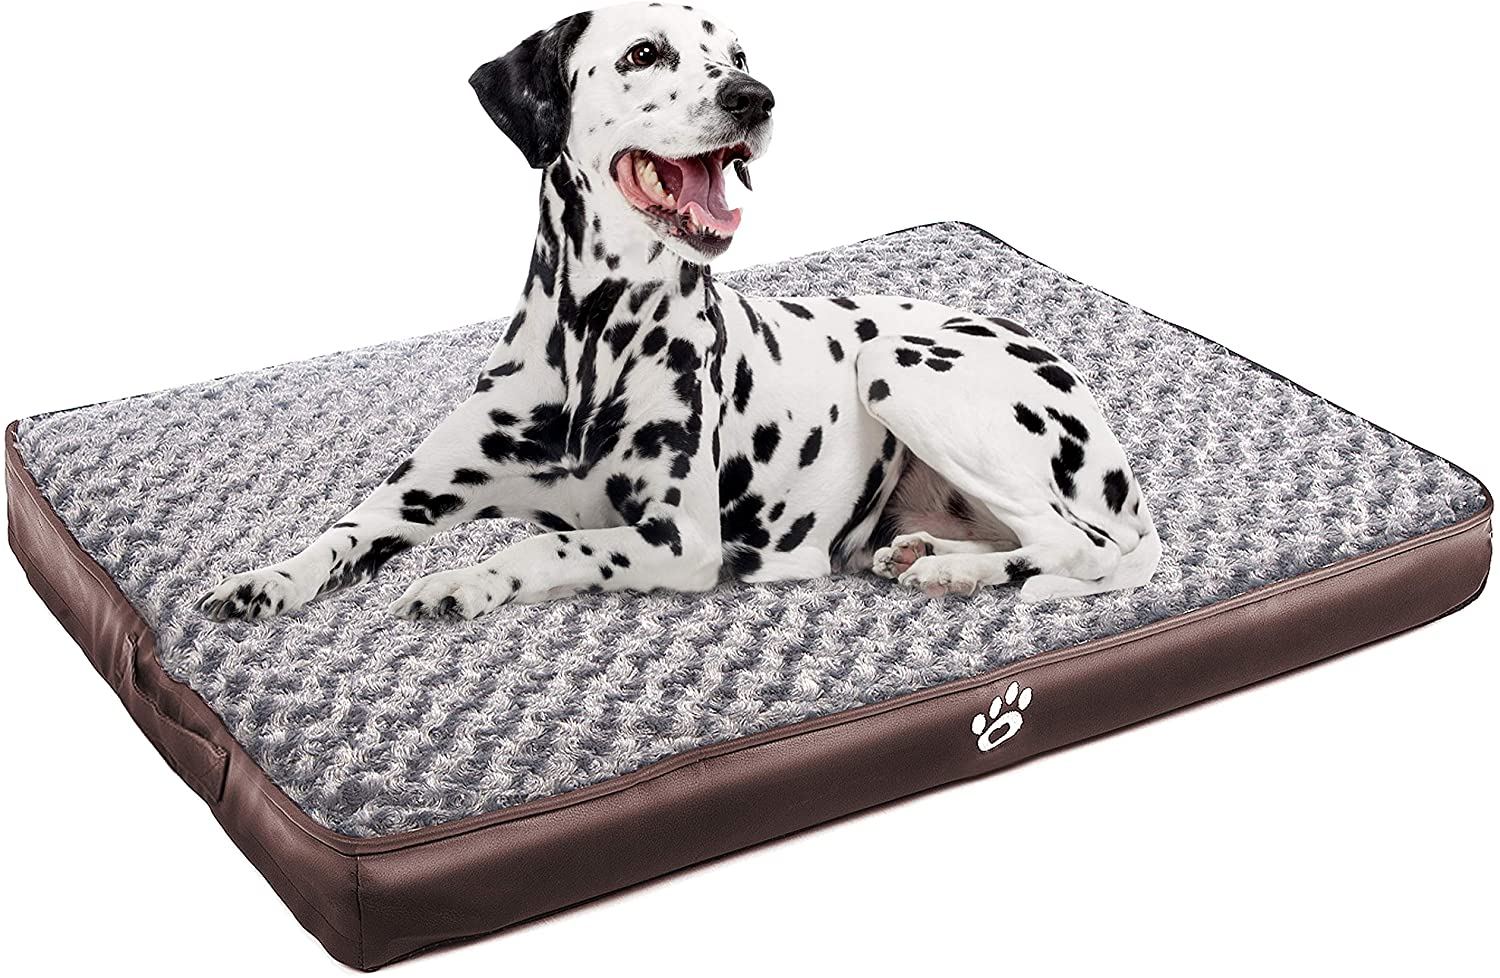 CLOUDZONE Orthopedic Dog Bed | Pet Bed Mattress with Removable Zipper Covers | Egg-Crate Foam Washable Dog Bed for Small/Medium/Large Dogs(XL/XXL/XXL)|Dog Crate Bed with Lining and Non-Slip Bottom